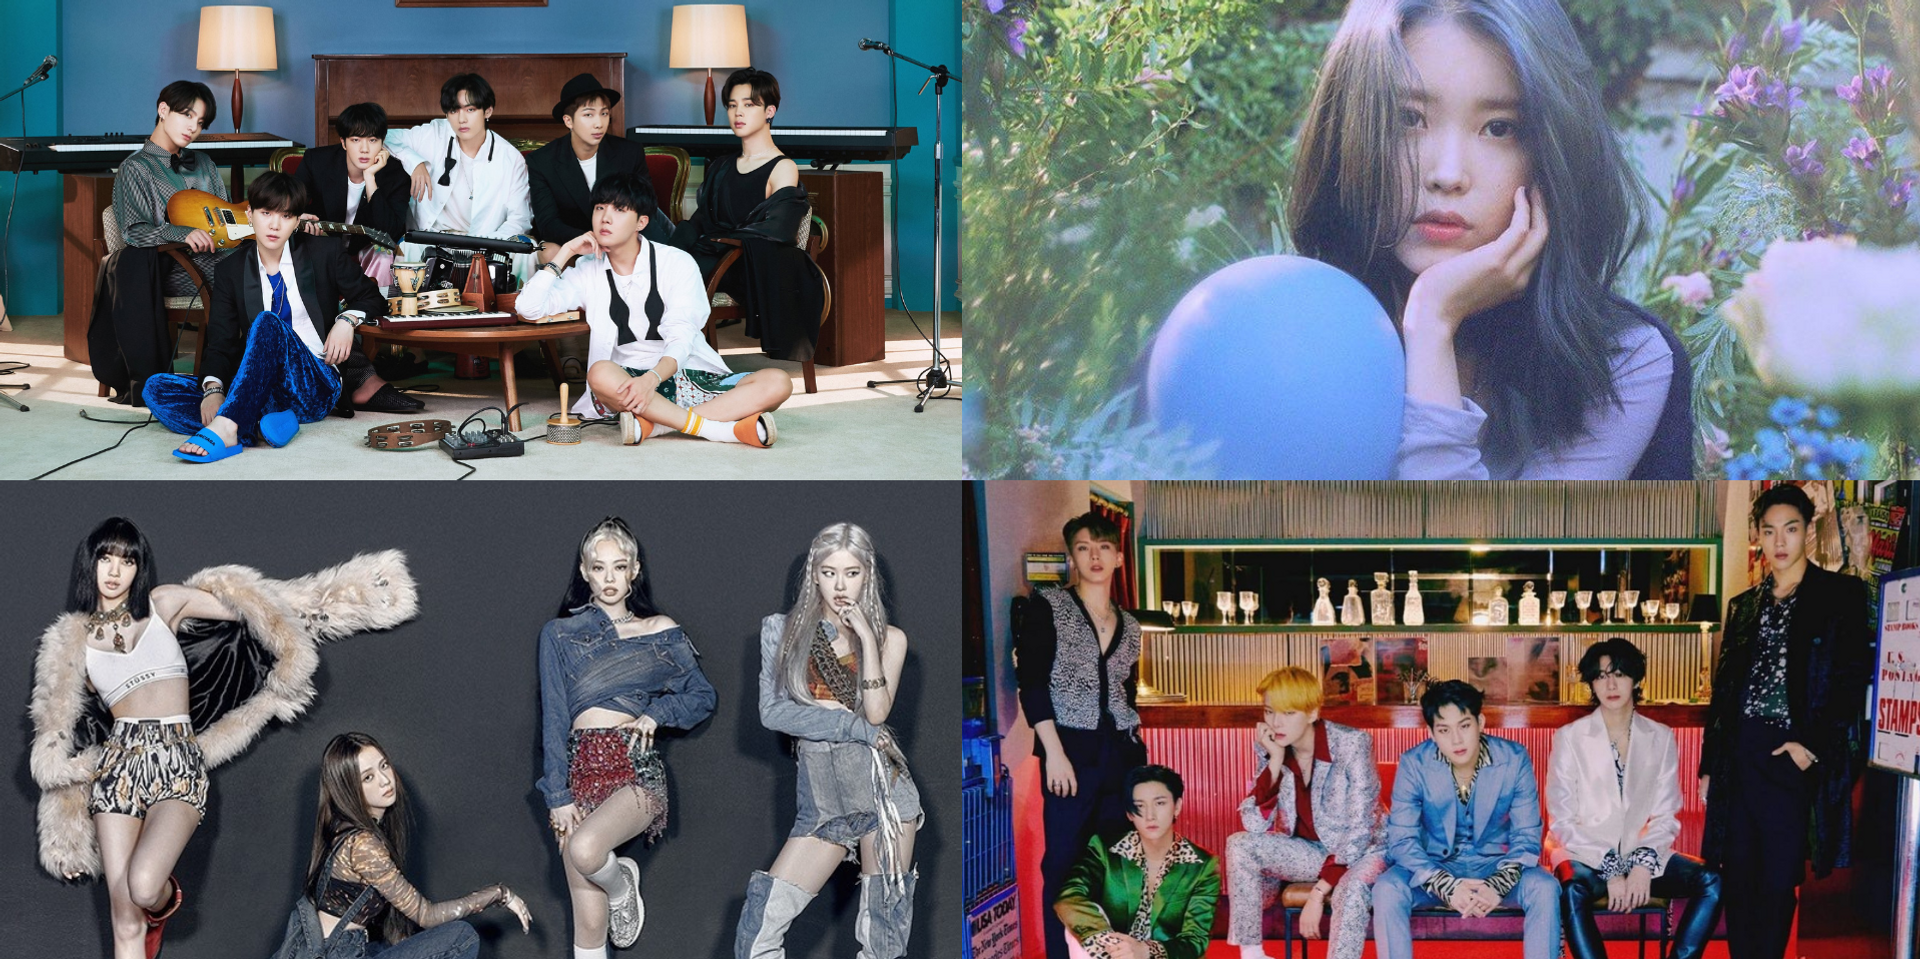 BTS, BLACKPINK, MONSTA X, IU, and more win at the 2020 Melon Music Awards - see the list of winners